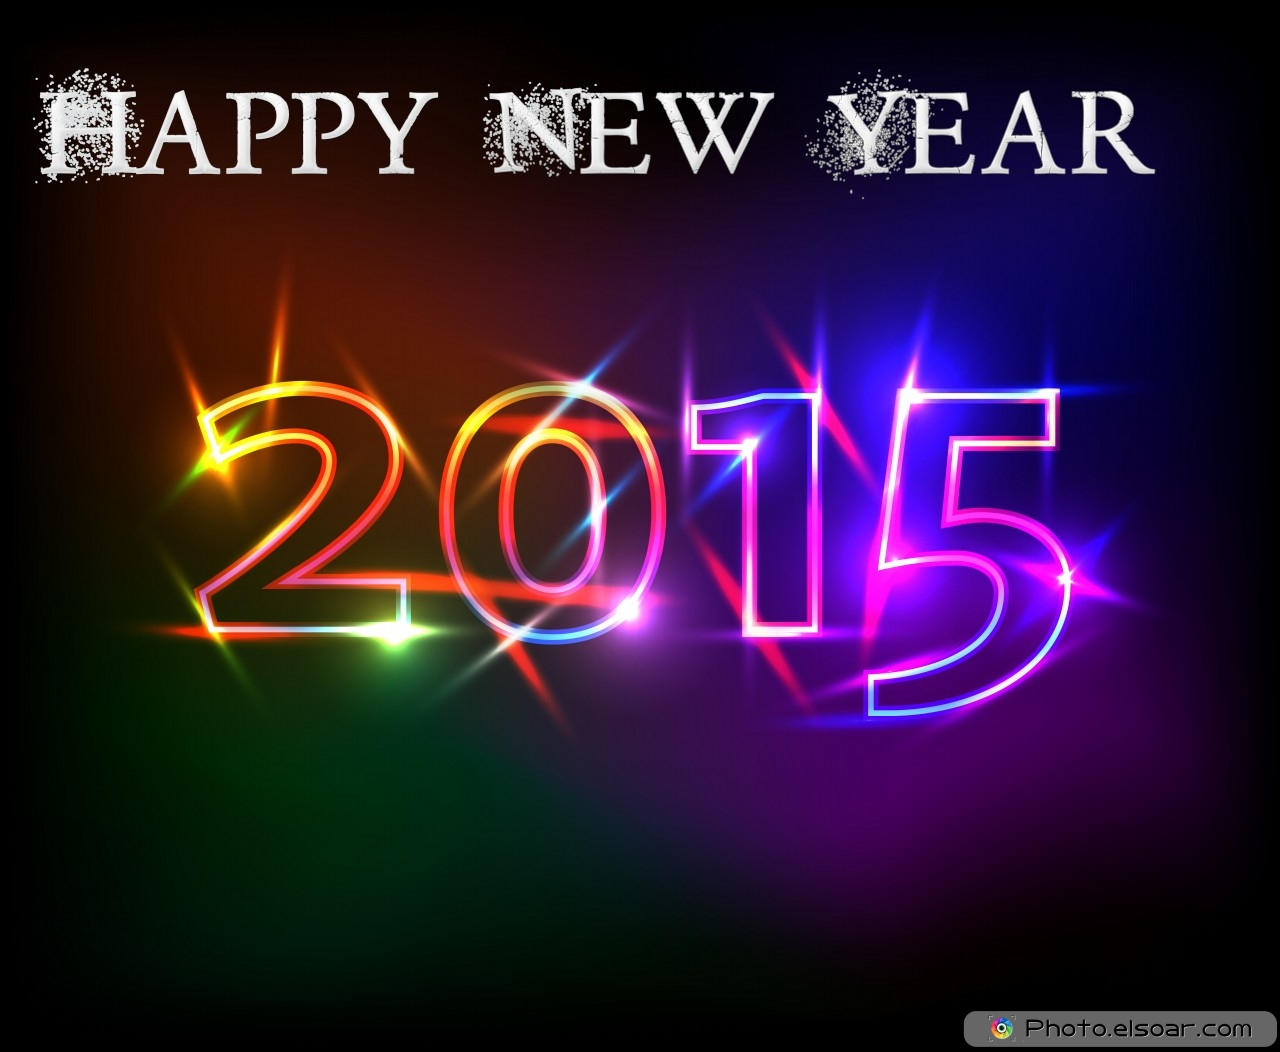 2016 happy new year wallpapers 2015   Grasscloth Wallpaper 1280x1052